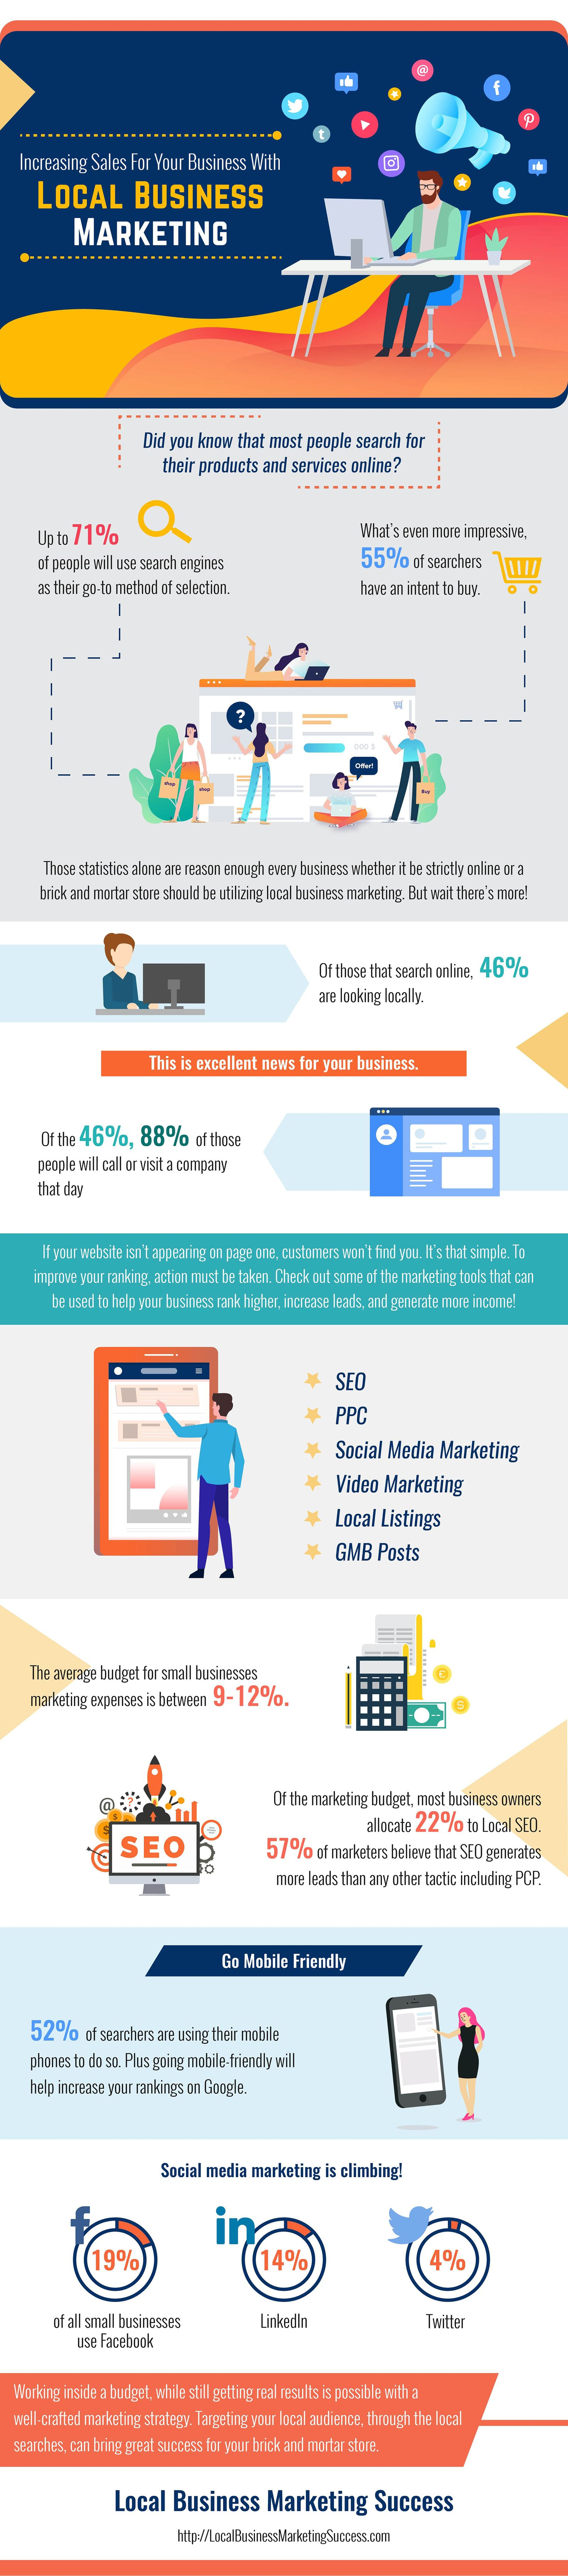 Increasing Sales For Your Business With Local Business Marketing